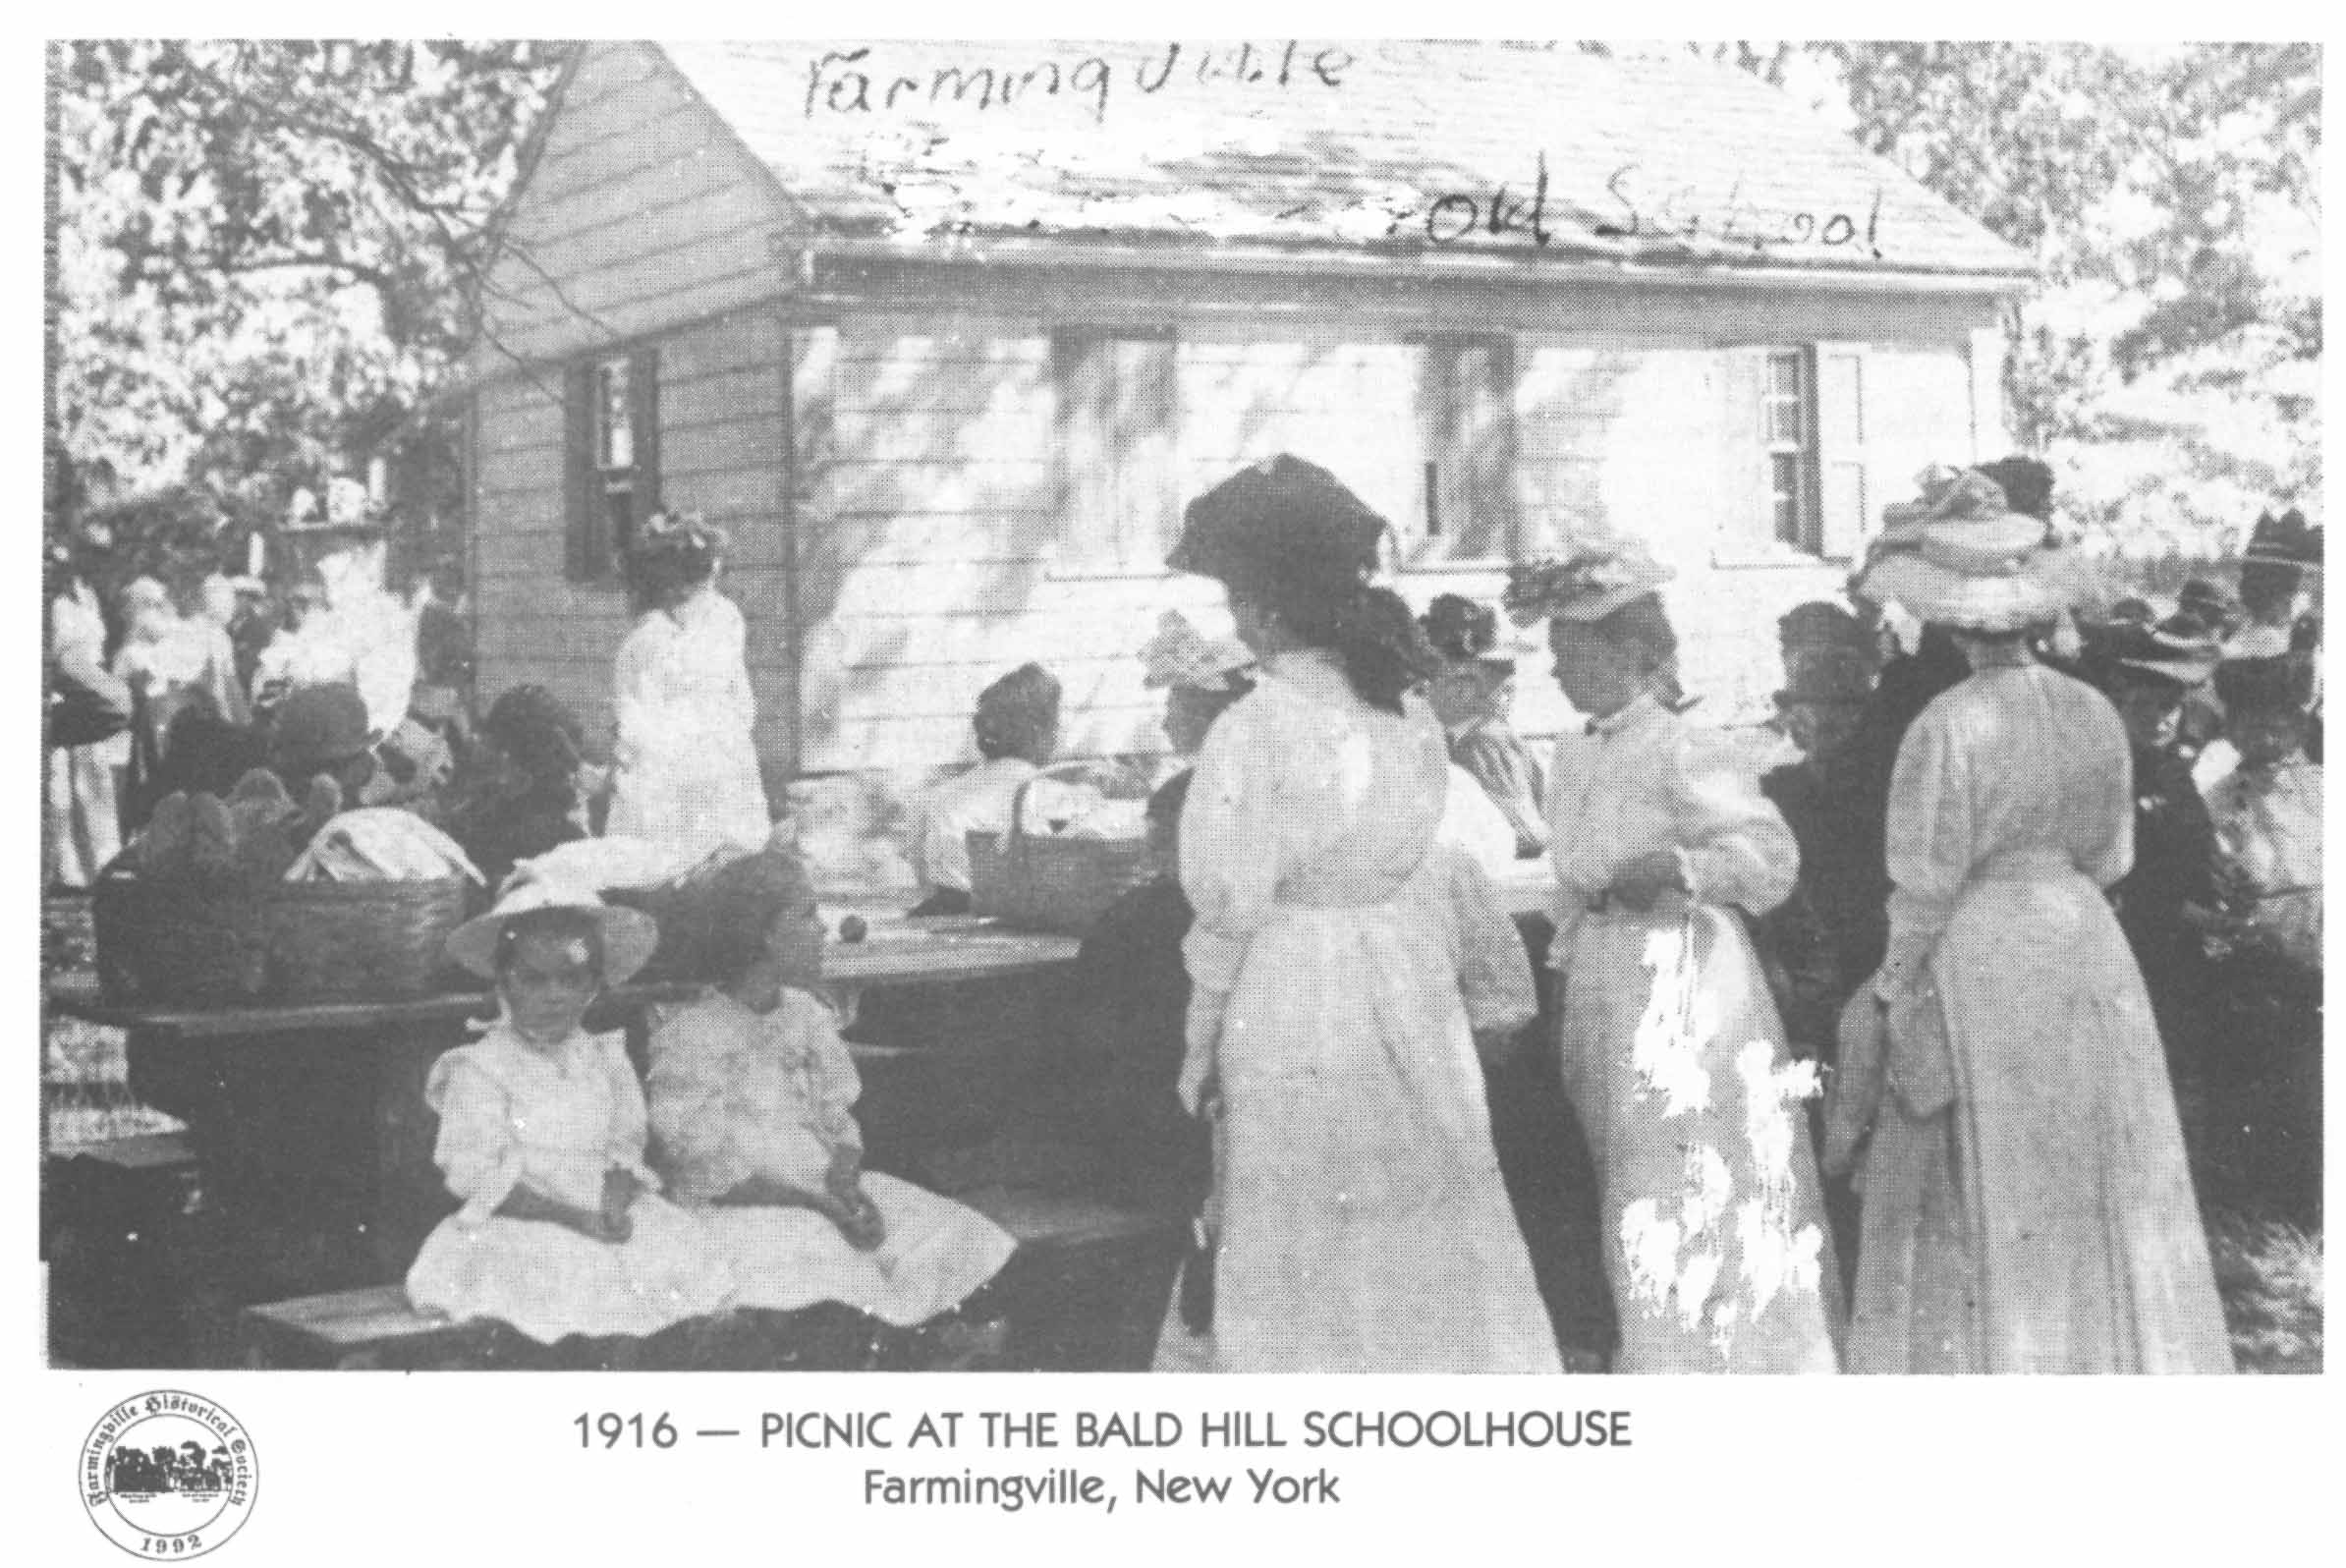 Picnic at the Bald Hill Schoolhouse, 1916